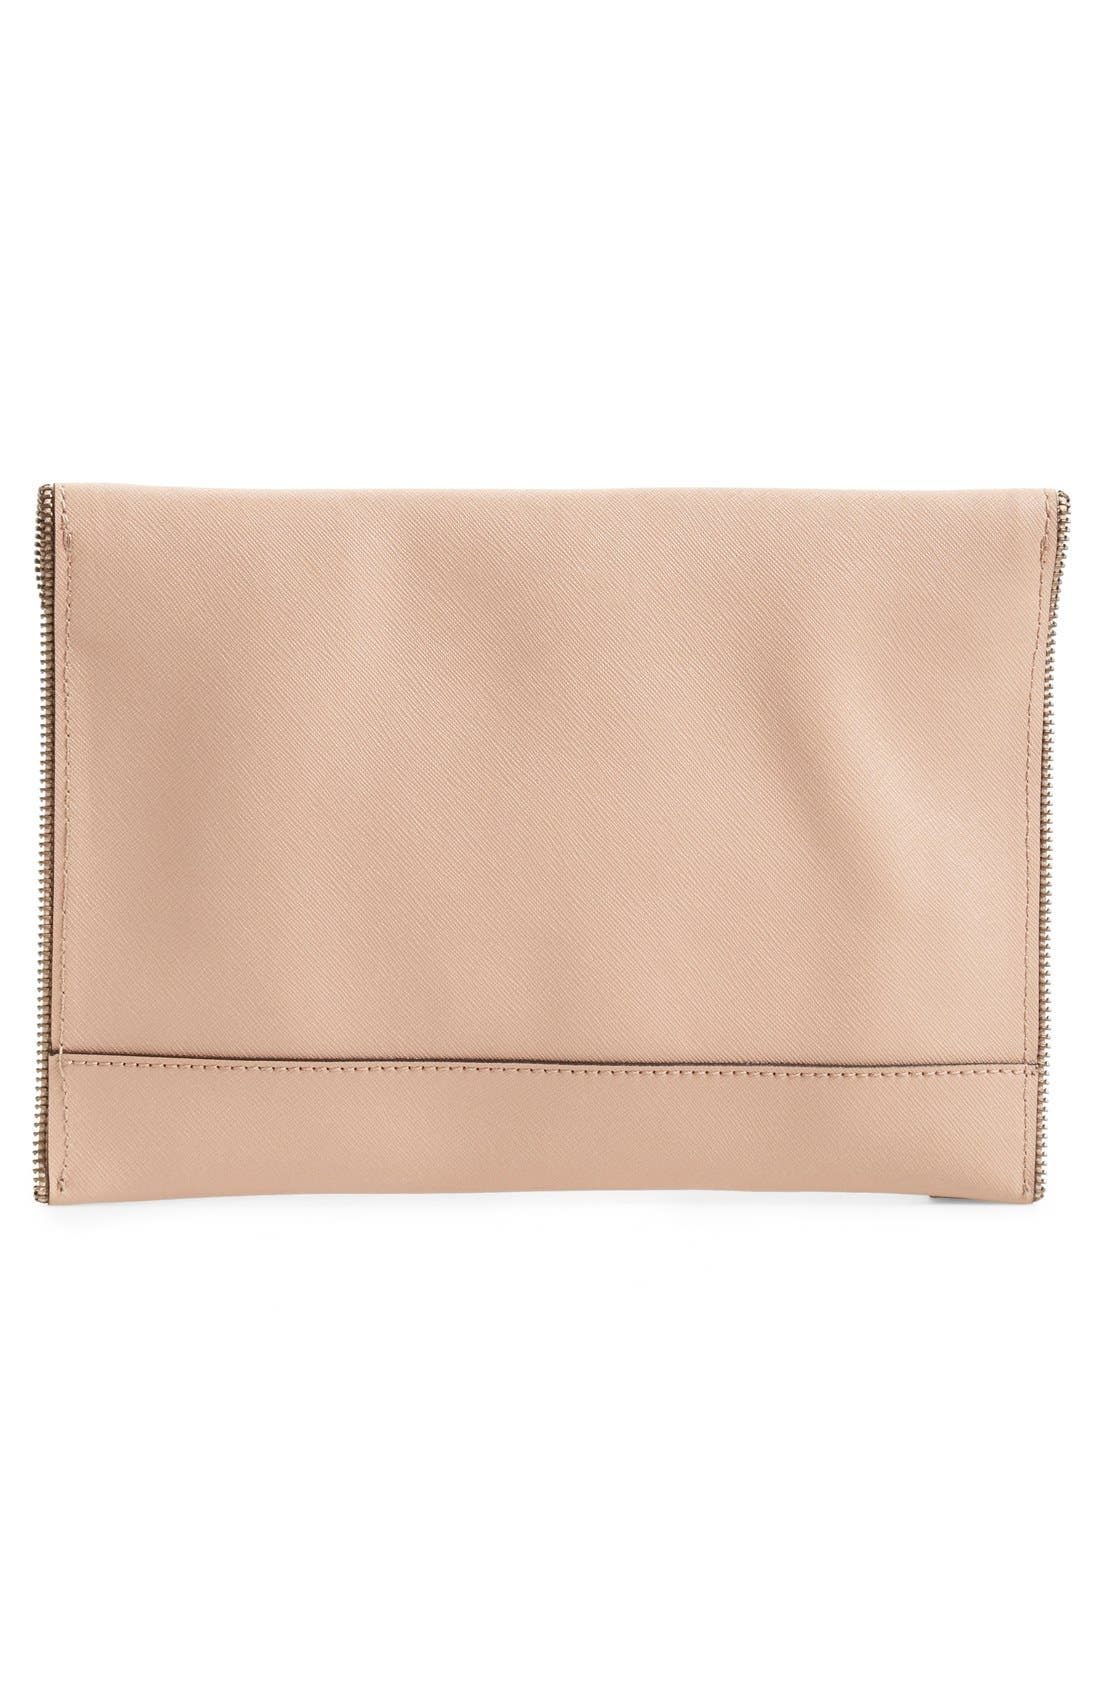 ,                             Leo Envelope Clutch,                             Alternate thumbnail 135, color,                             251